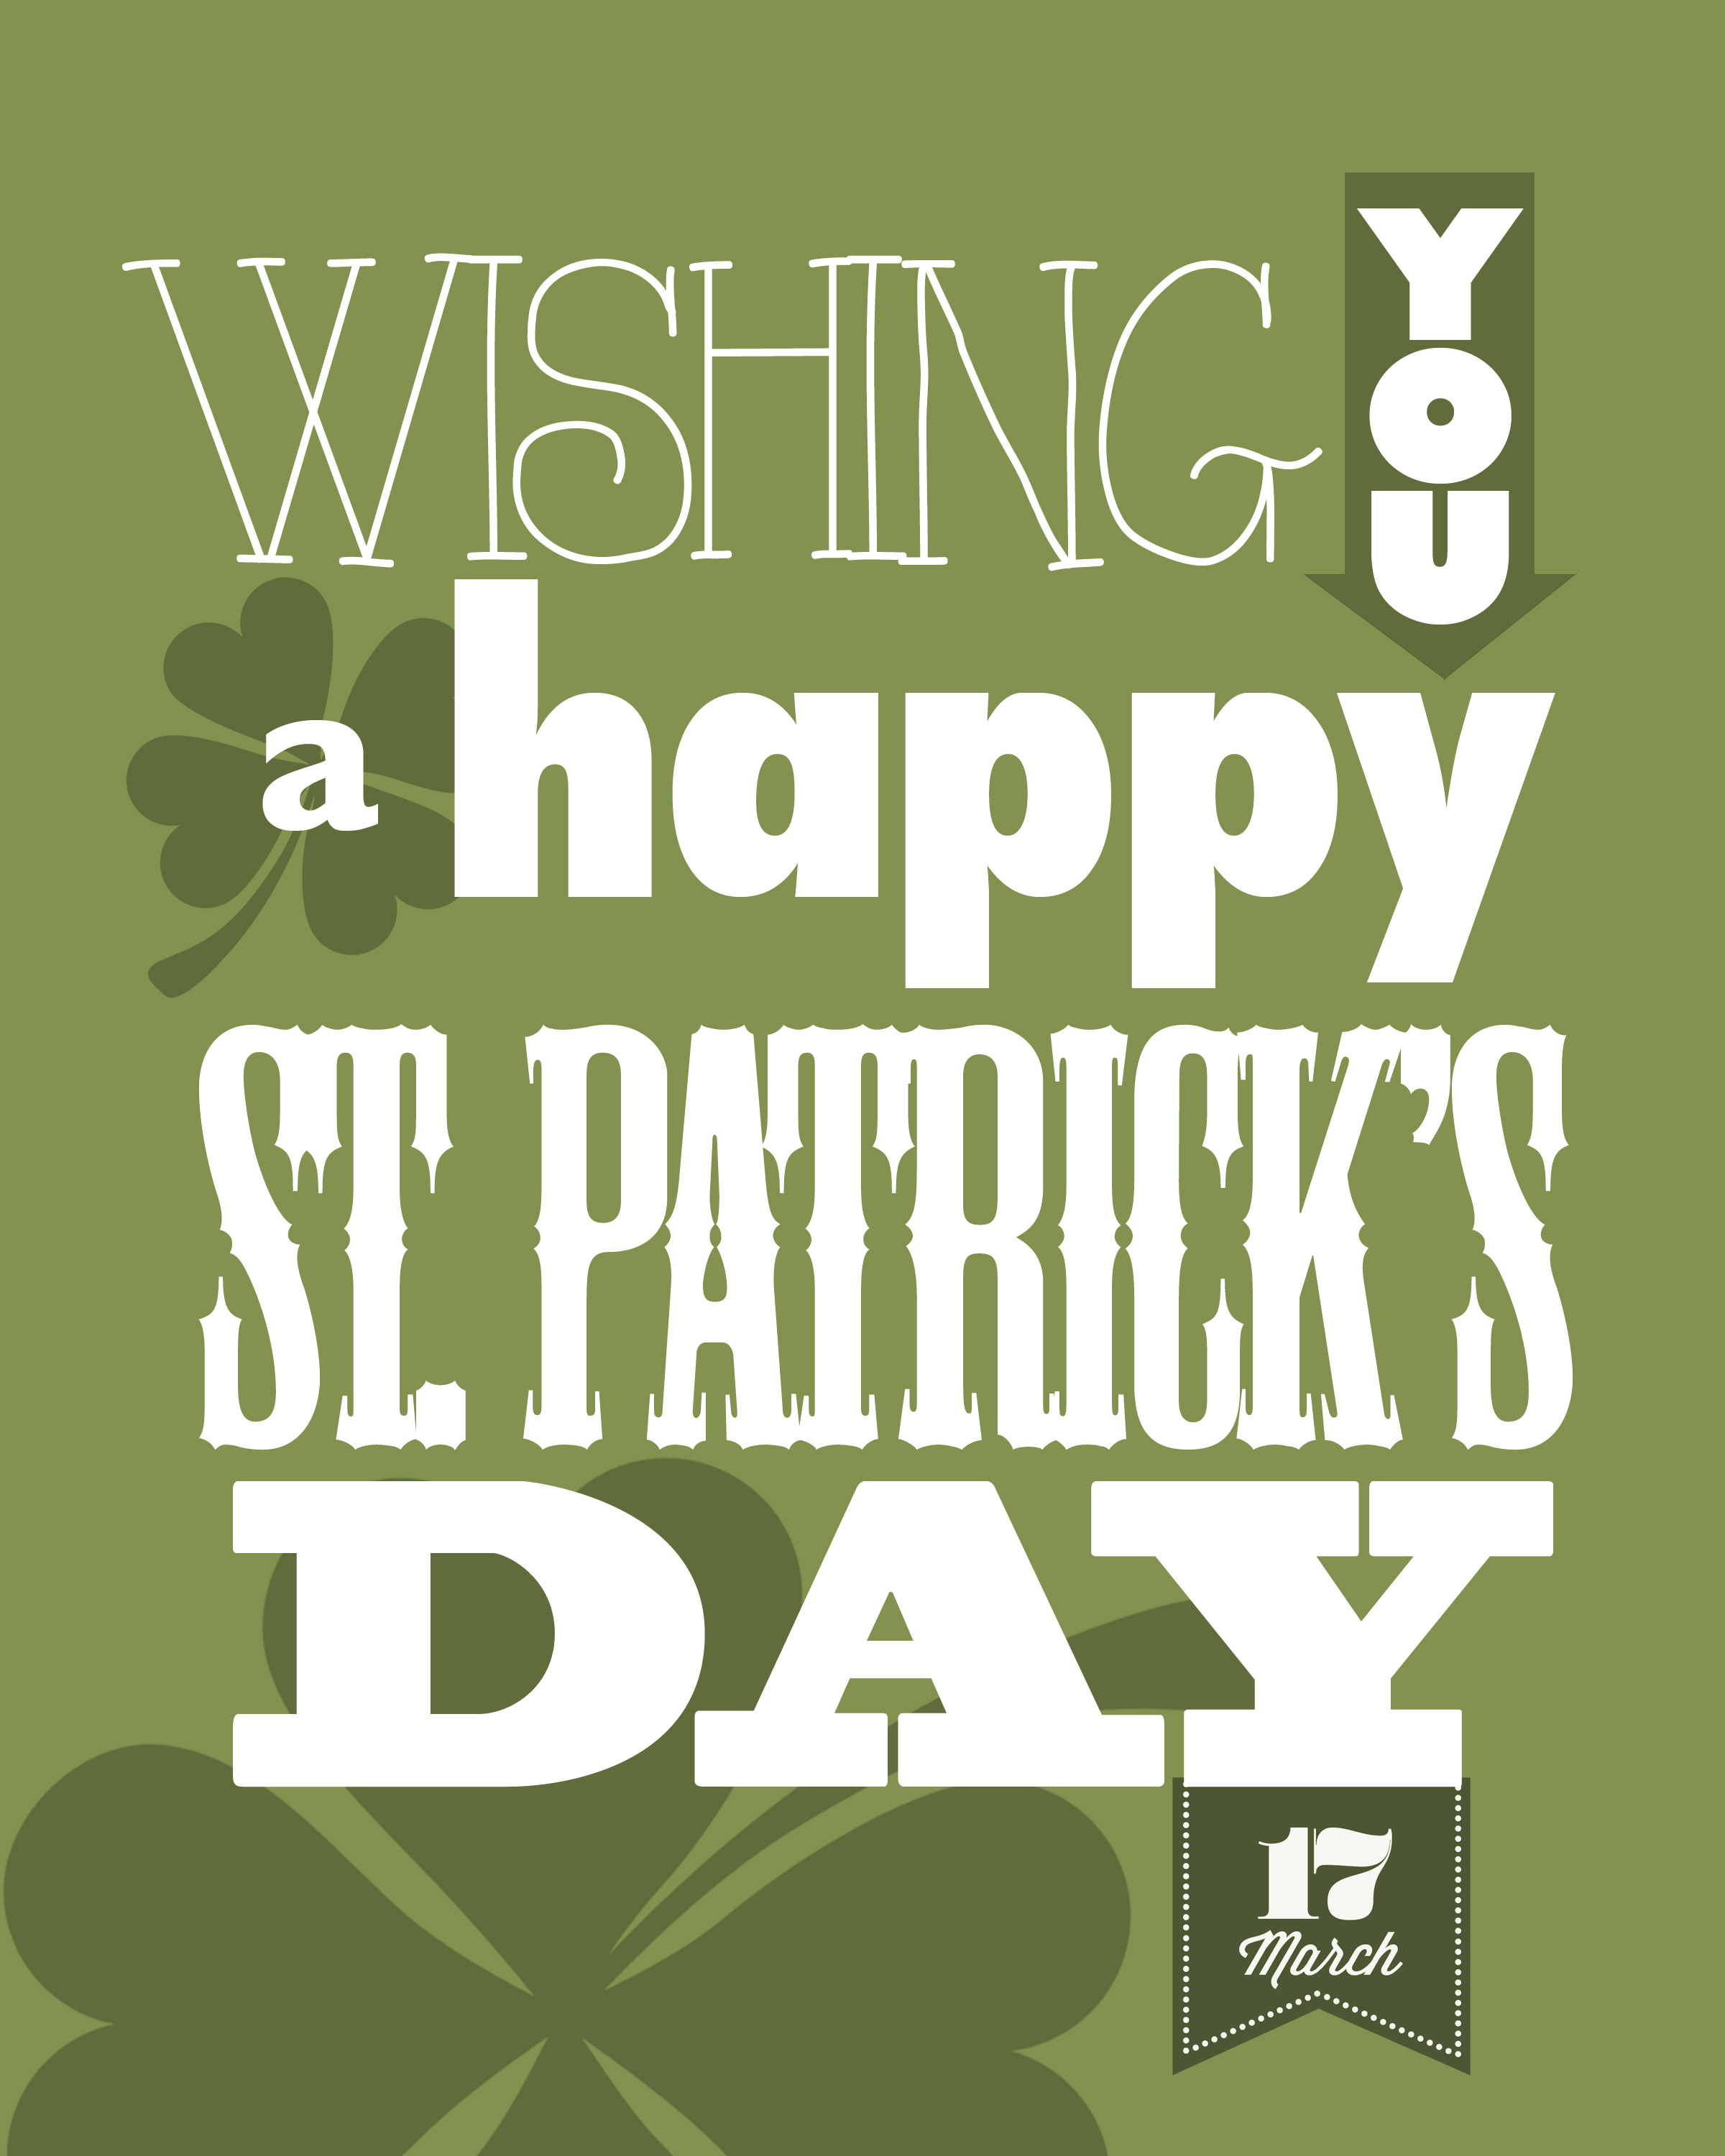 St. Patrick's Day Free Printables - How To Nest For Less™ - Free Printable St Patrick's Day Banner